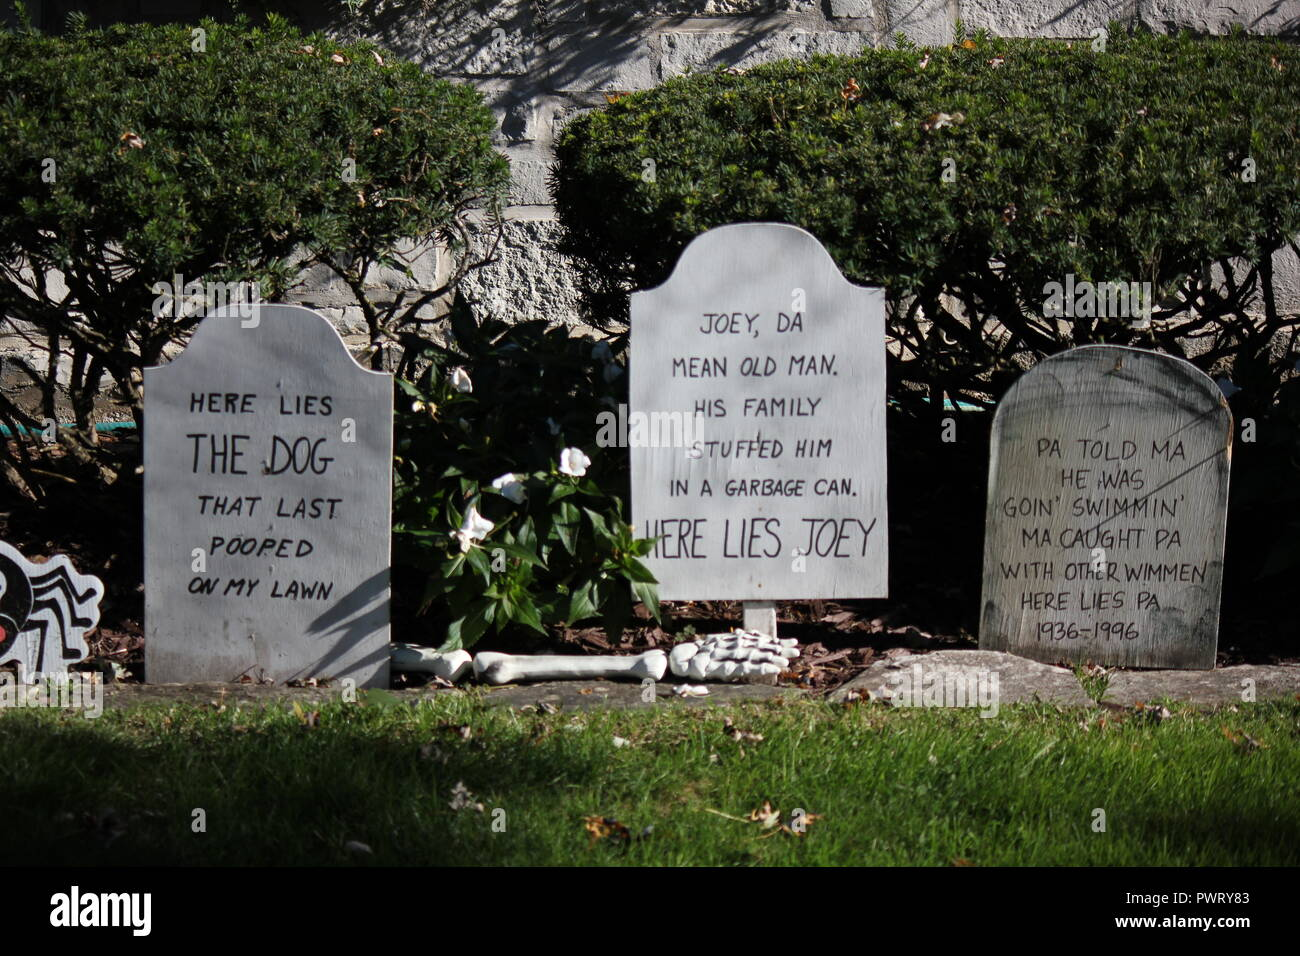 funny epitaph stock photos & funny epitaph stock images - alamy